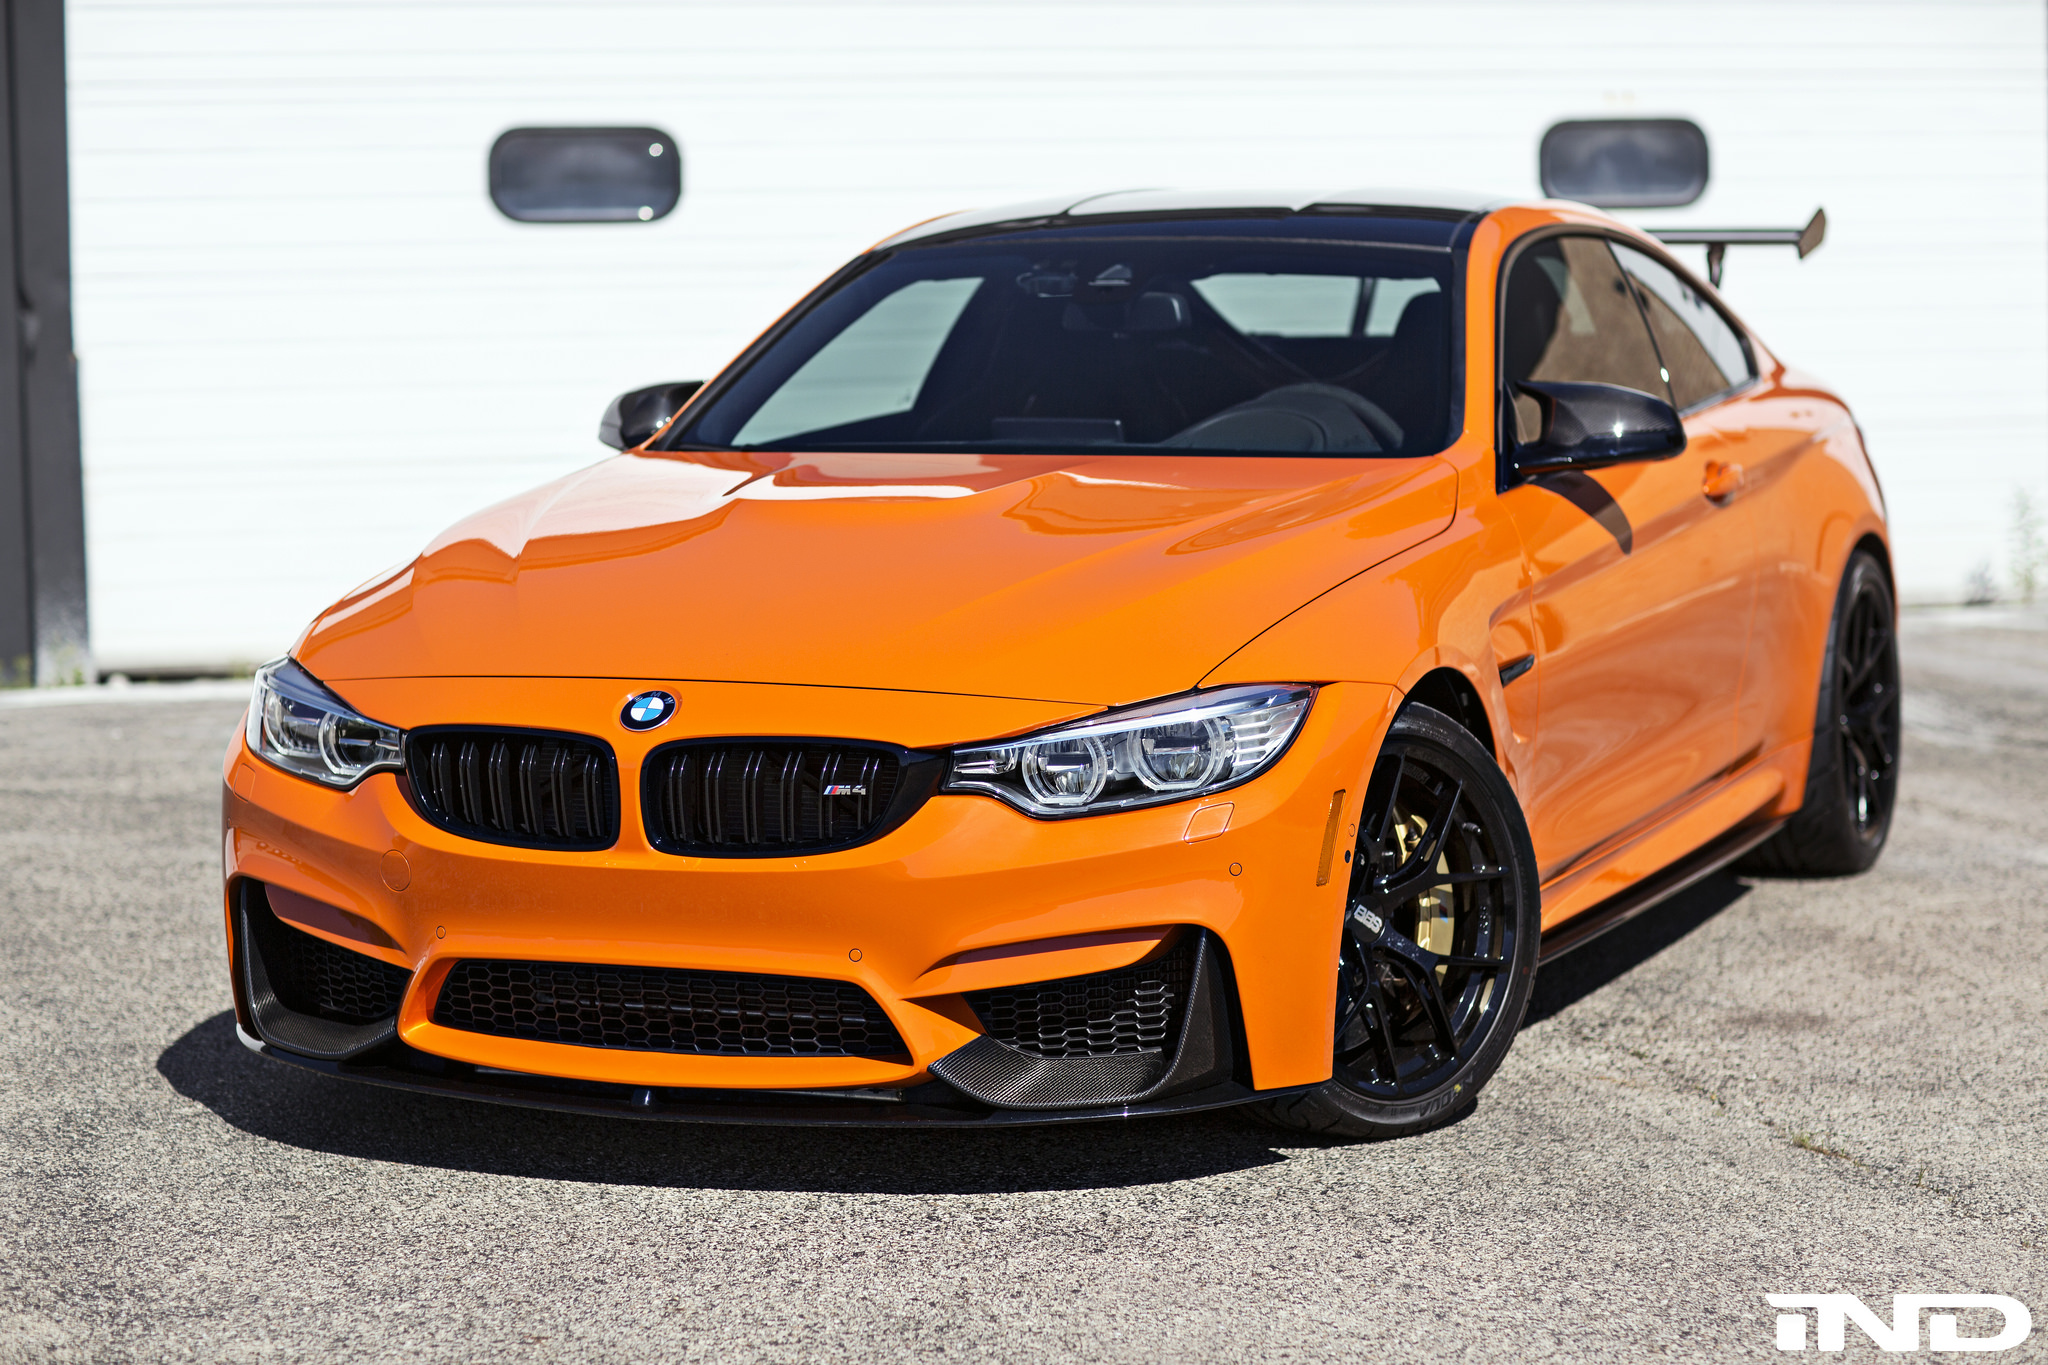 Fire Orange Bmw M4 Modded By Ind Distribution